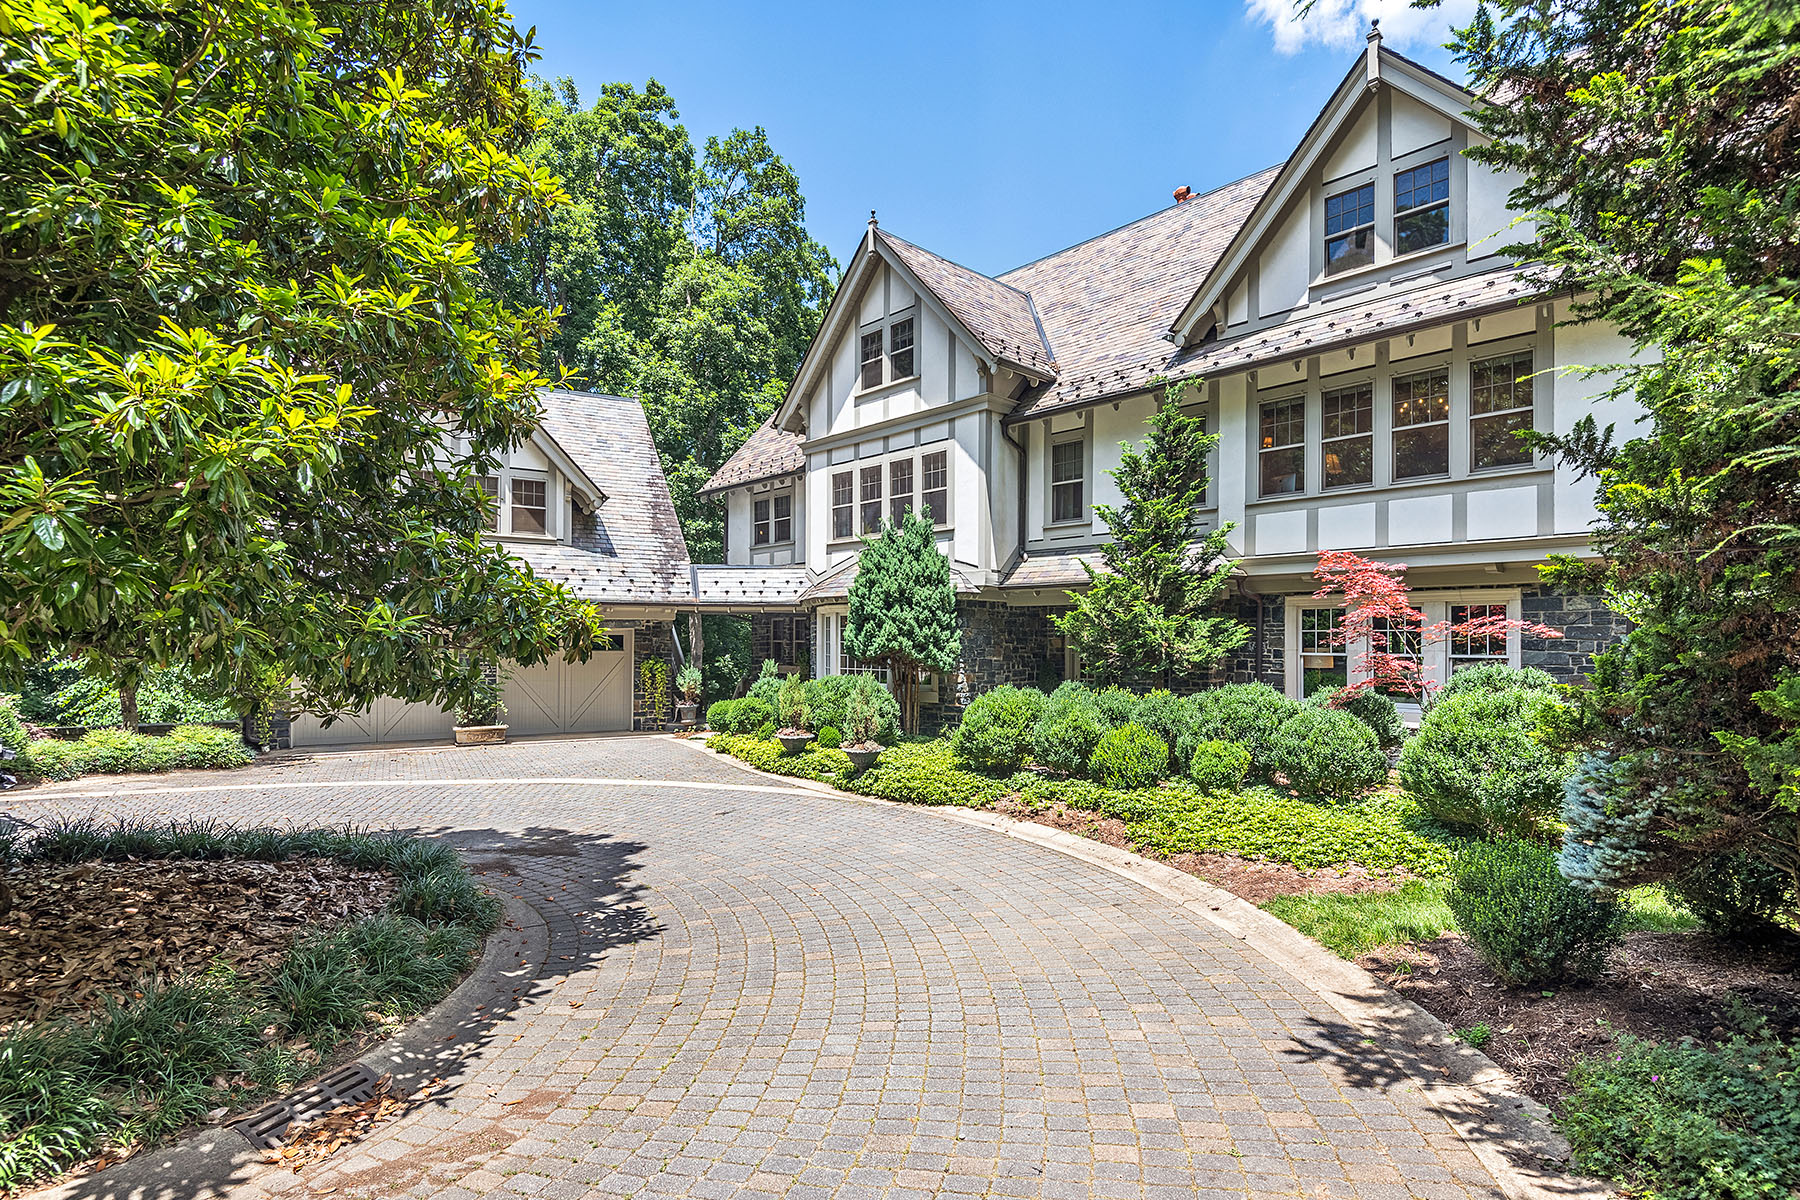 Single Family Homes for Active at ASHEVILLE 9 Eastwood Rd Biltmore Forest, North Carolina 28803 United States